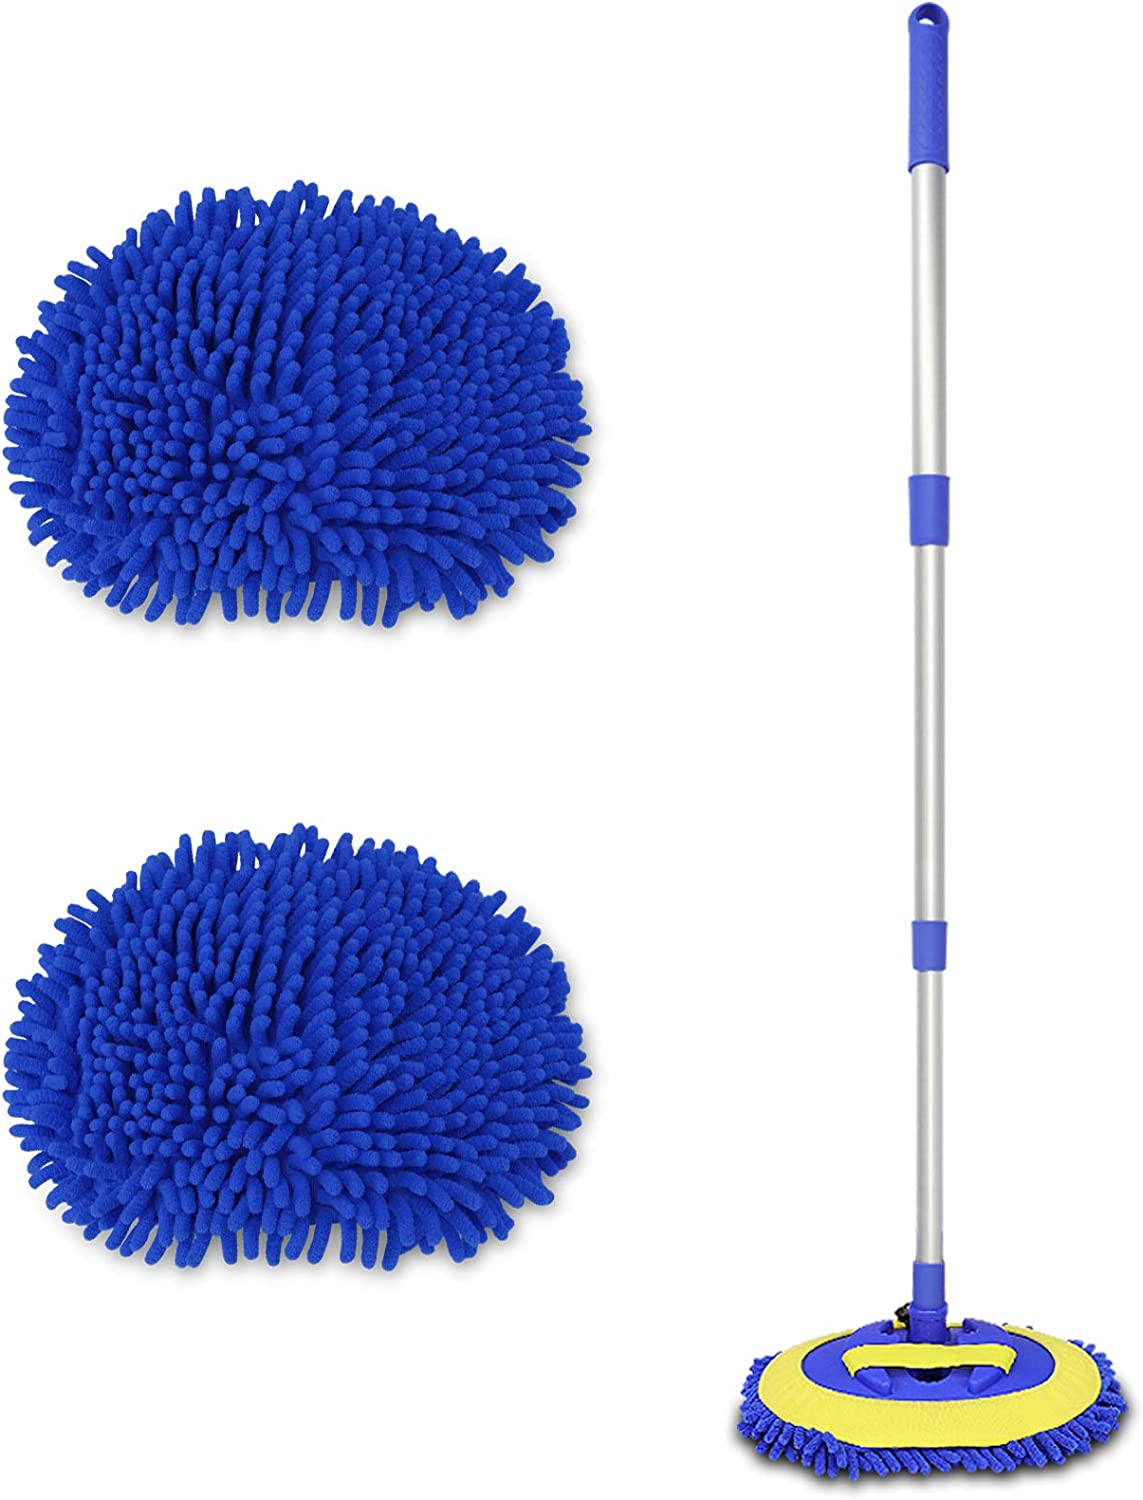 1Car Duster -1Towels Extendable Premium Car Dusters for Exterior and Interior Chenille Microfiber Car Duster Kit Scratch Free Lint Free - Highly Absorbent Polishing Wax Towel